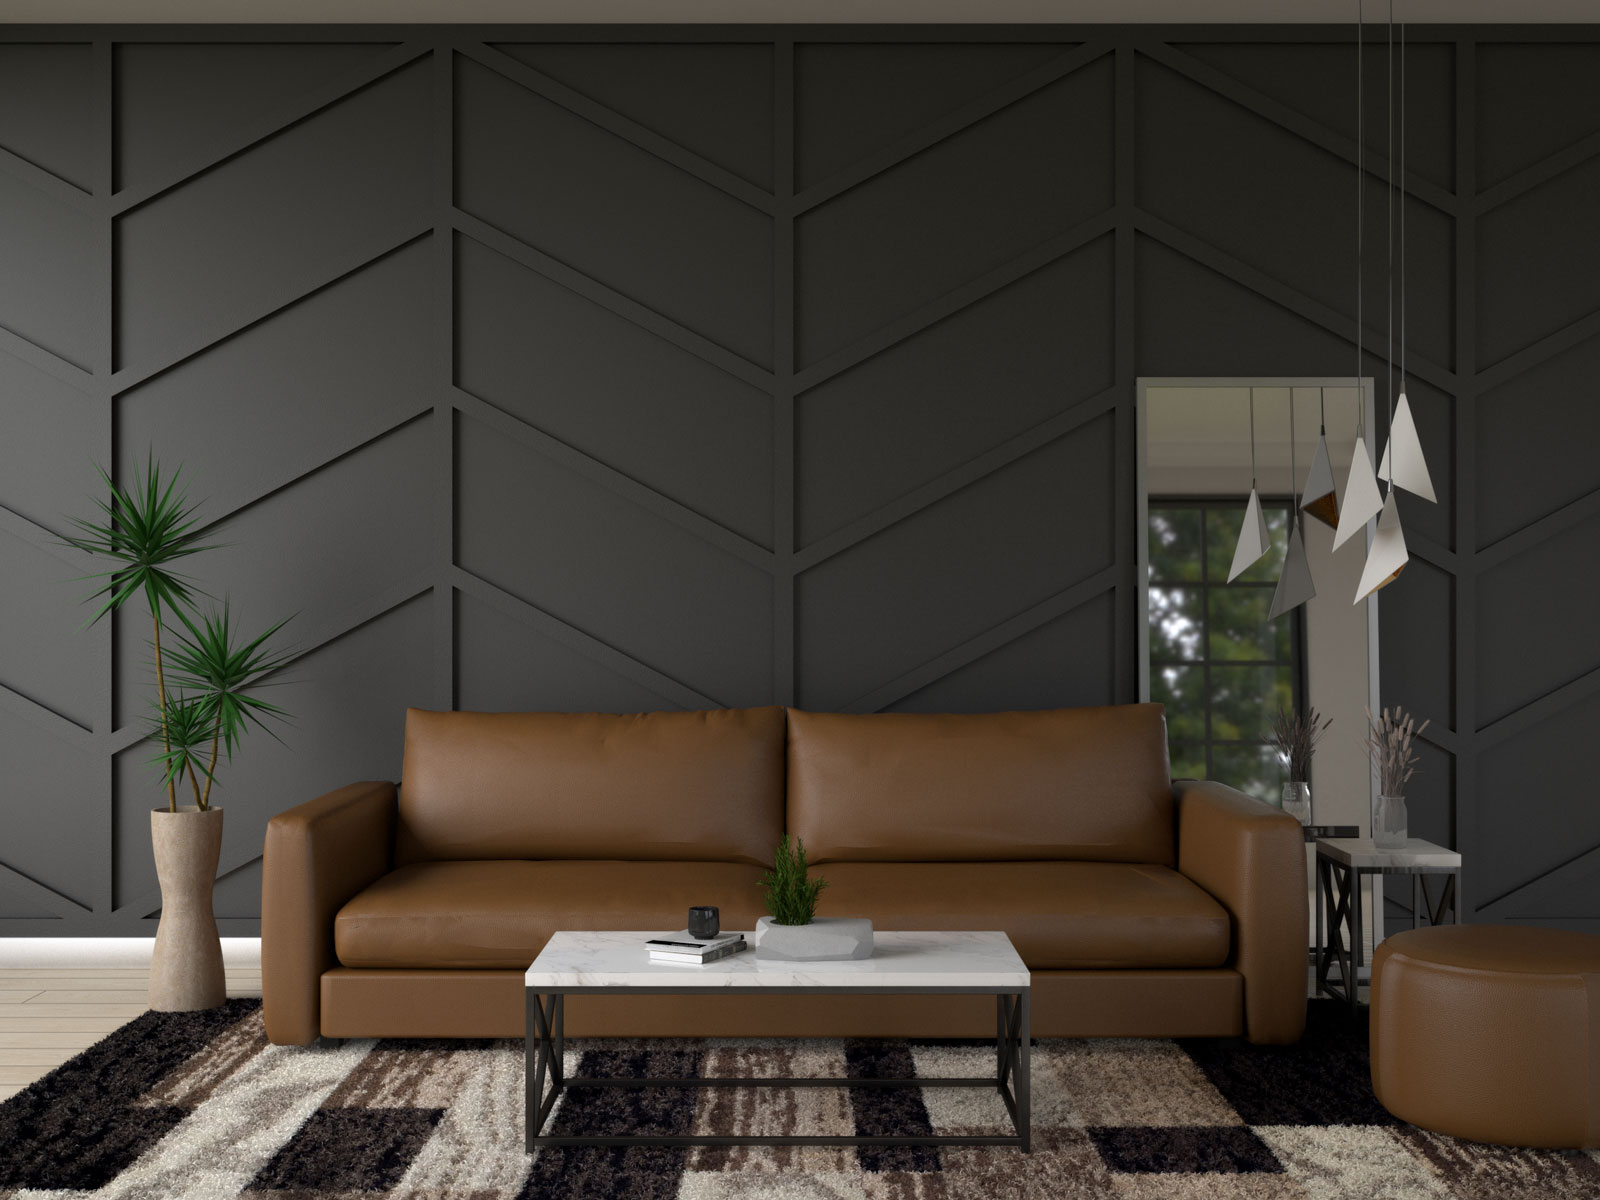 Brown leather furniture with black accent wall